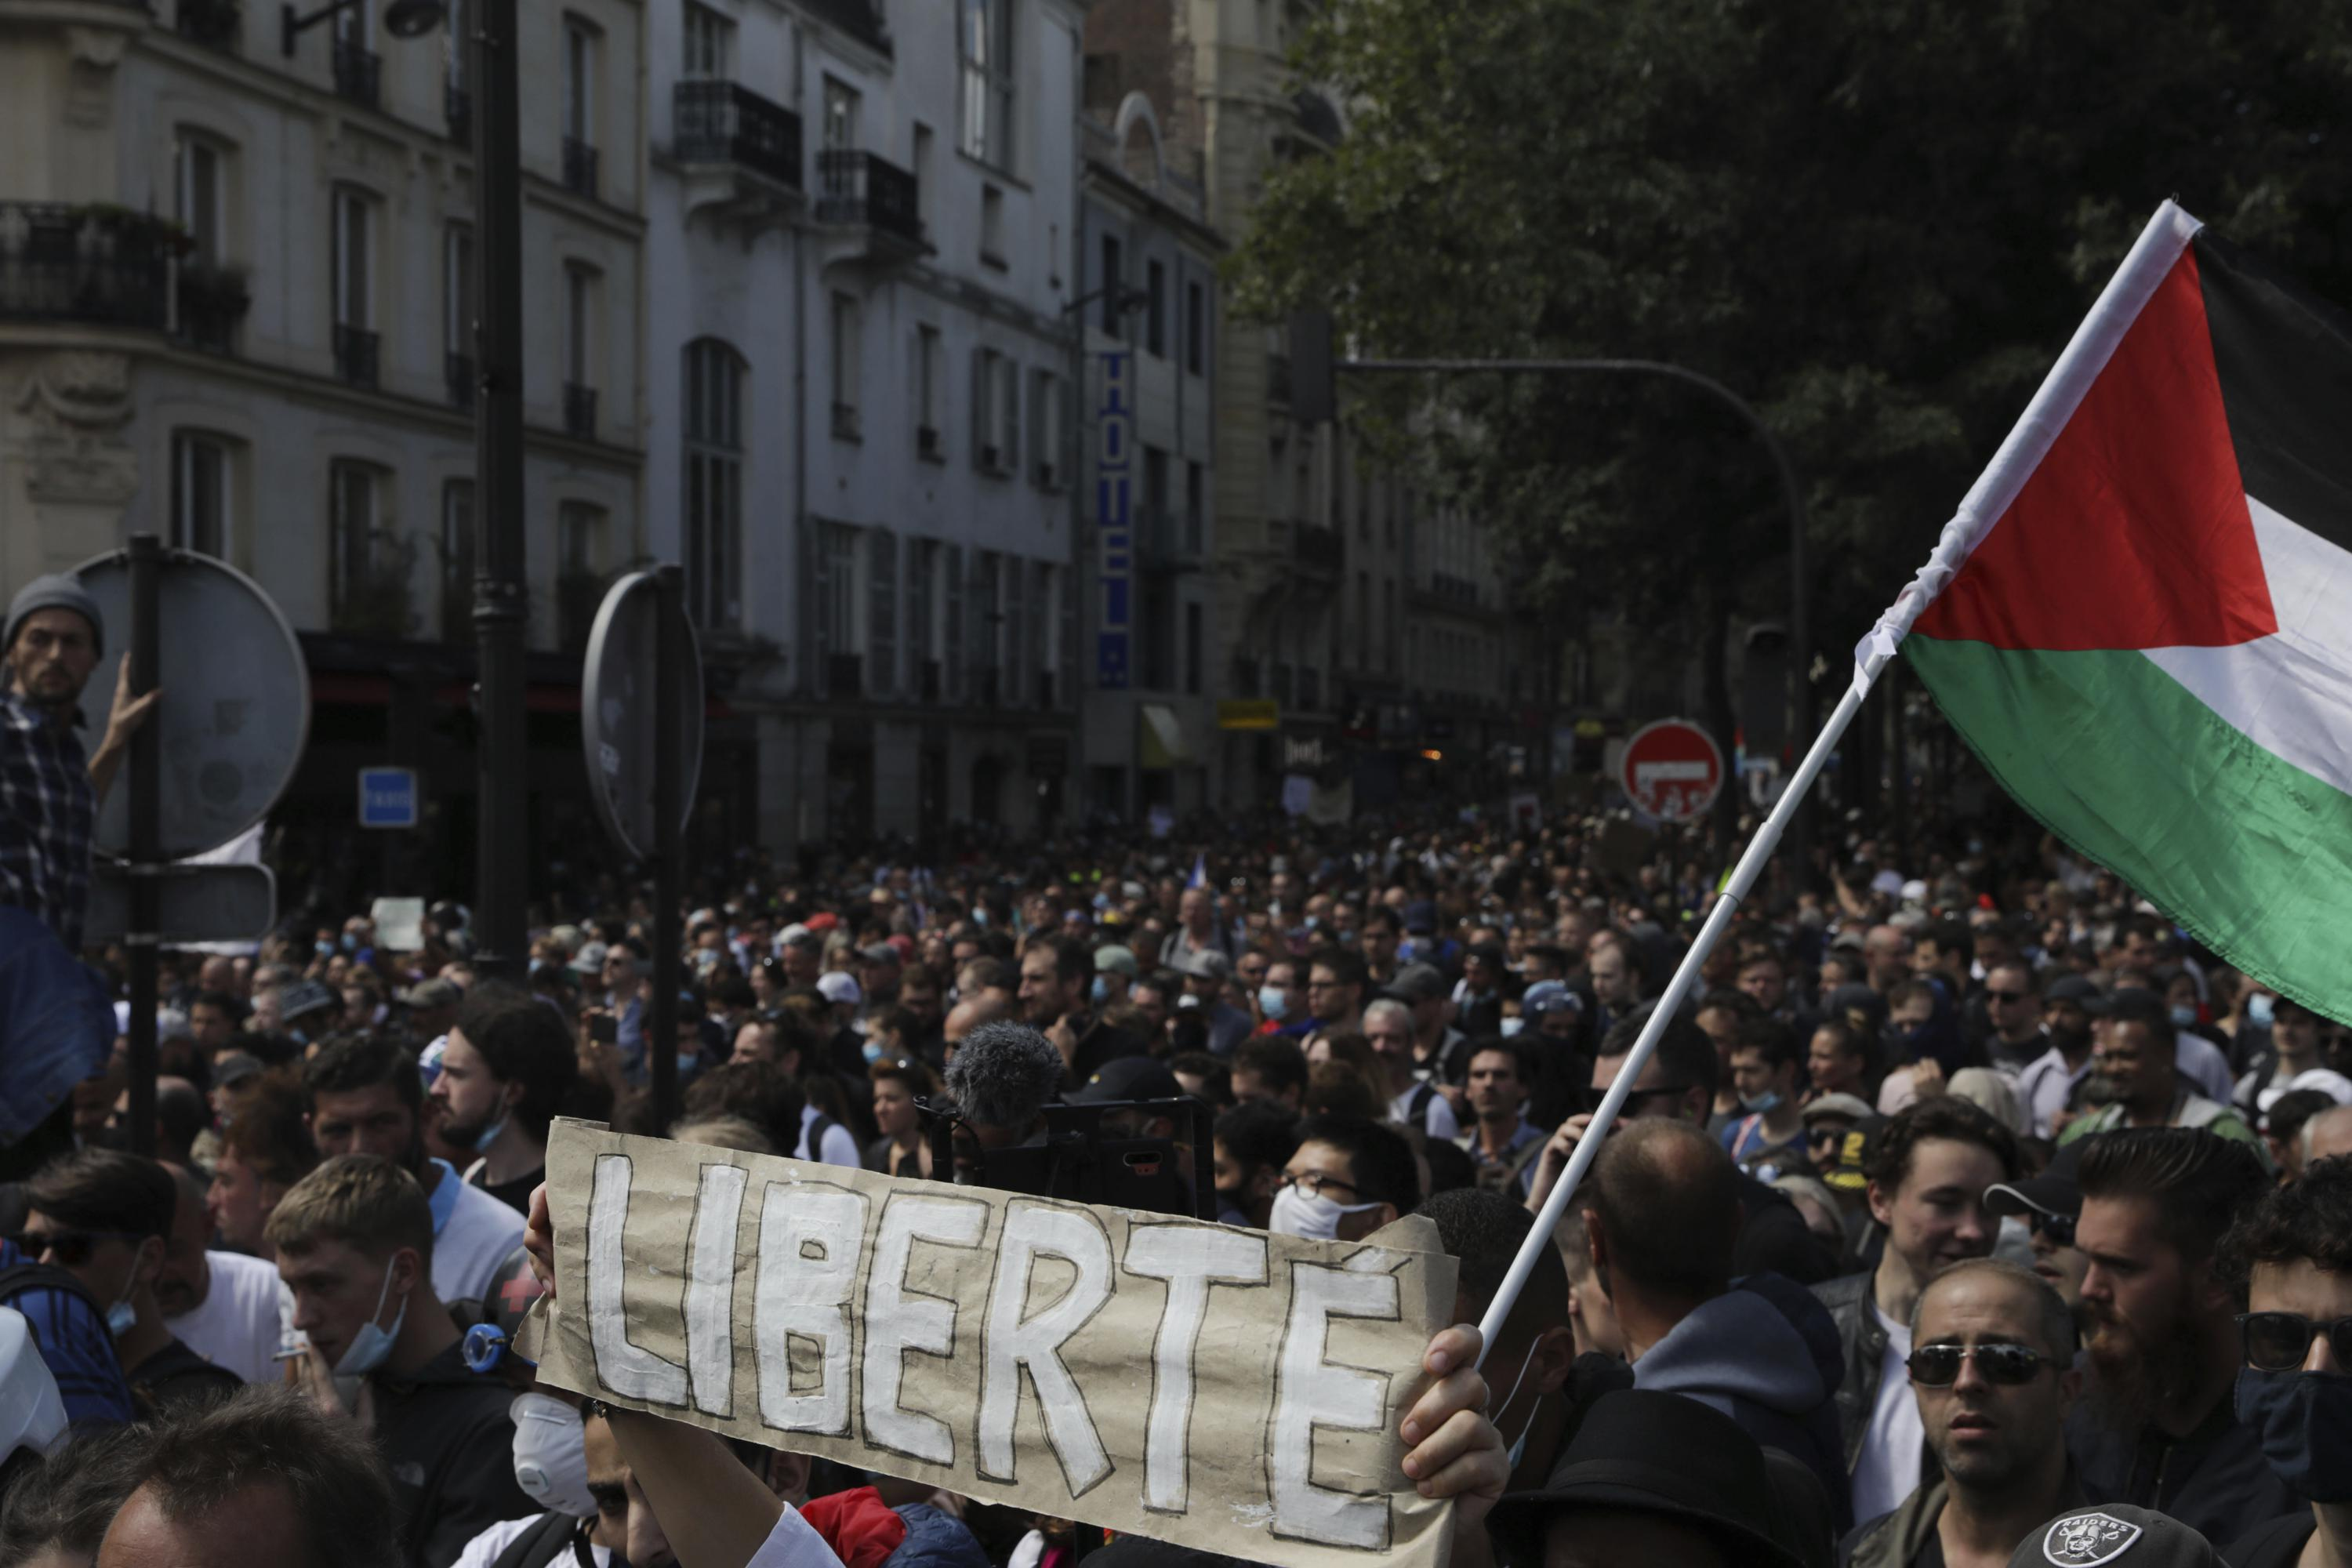 French police clash with anti-virus pass protesters in Paris - Associated Press